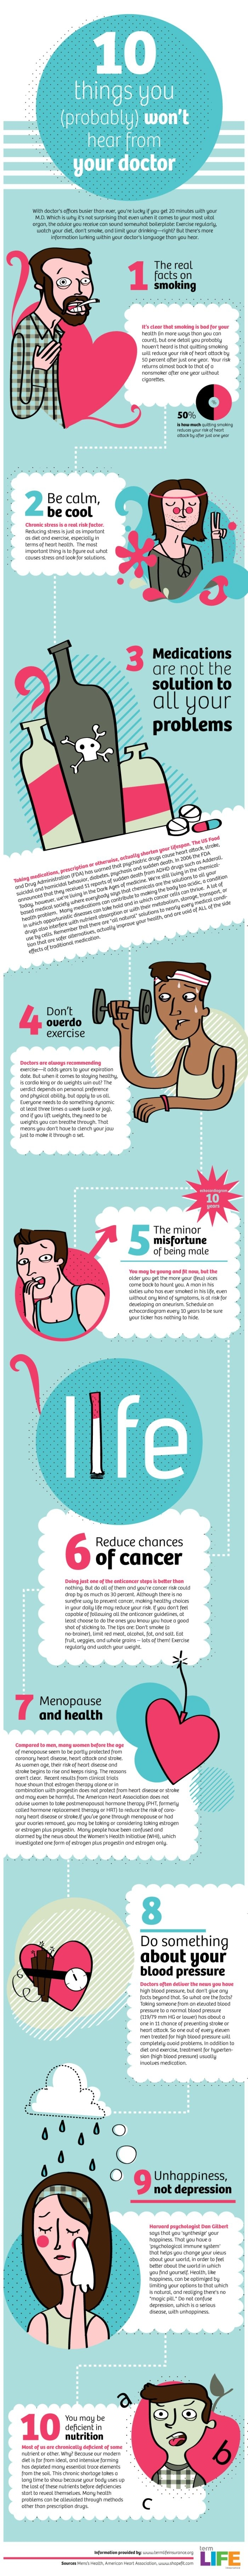 10 Health Facts You Should Know